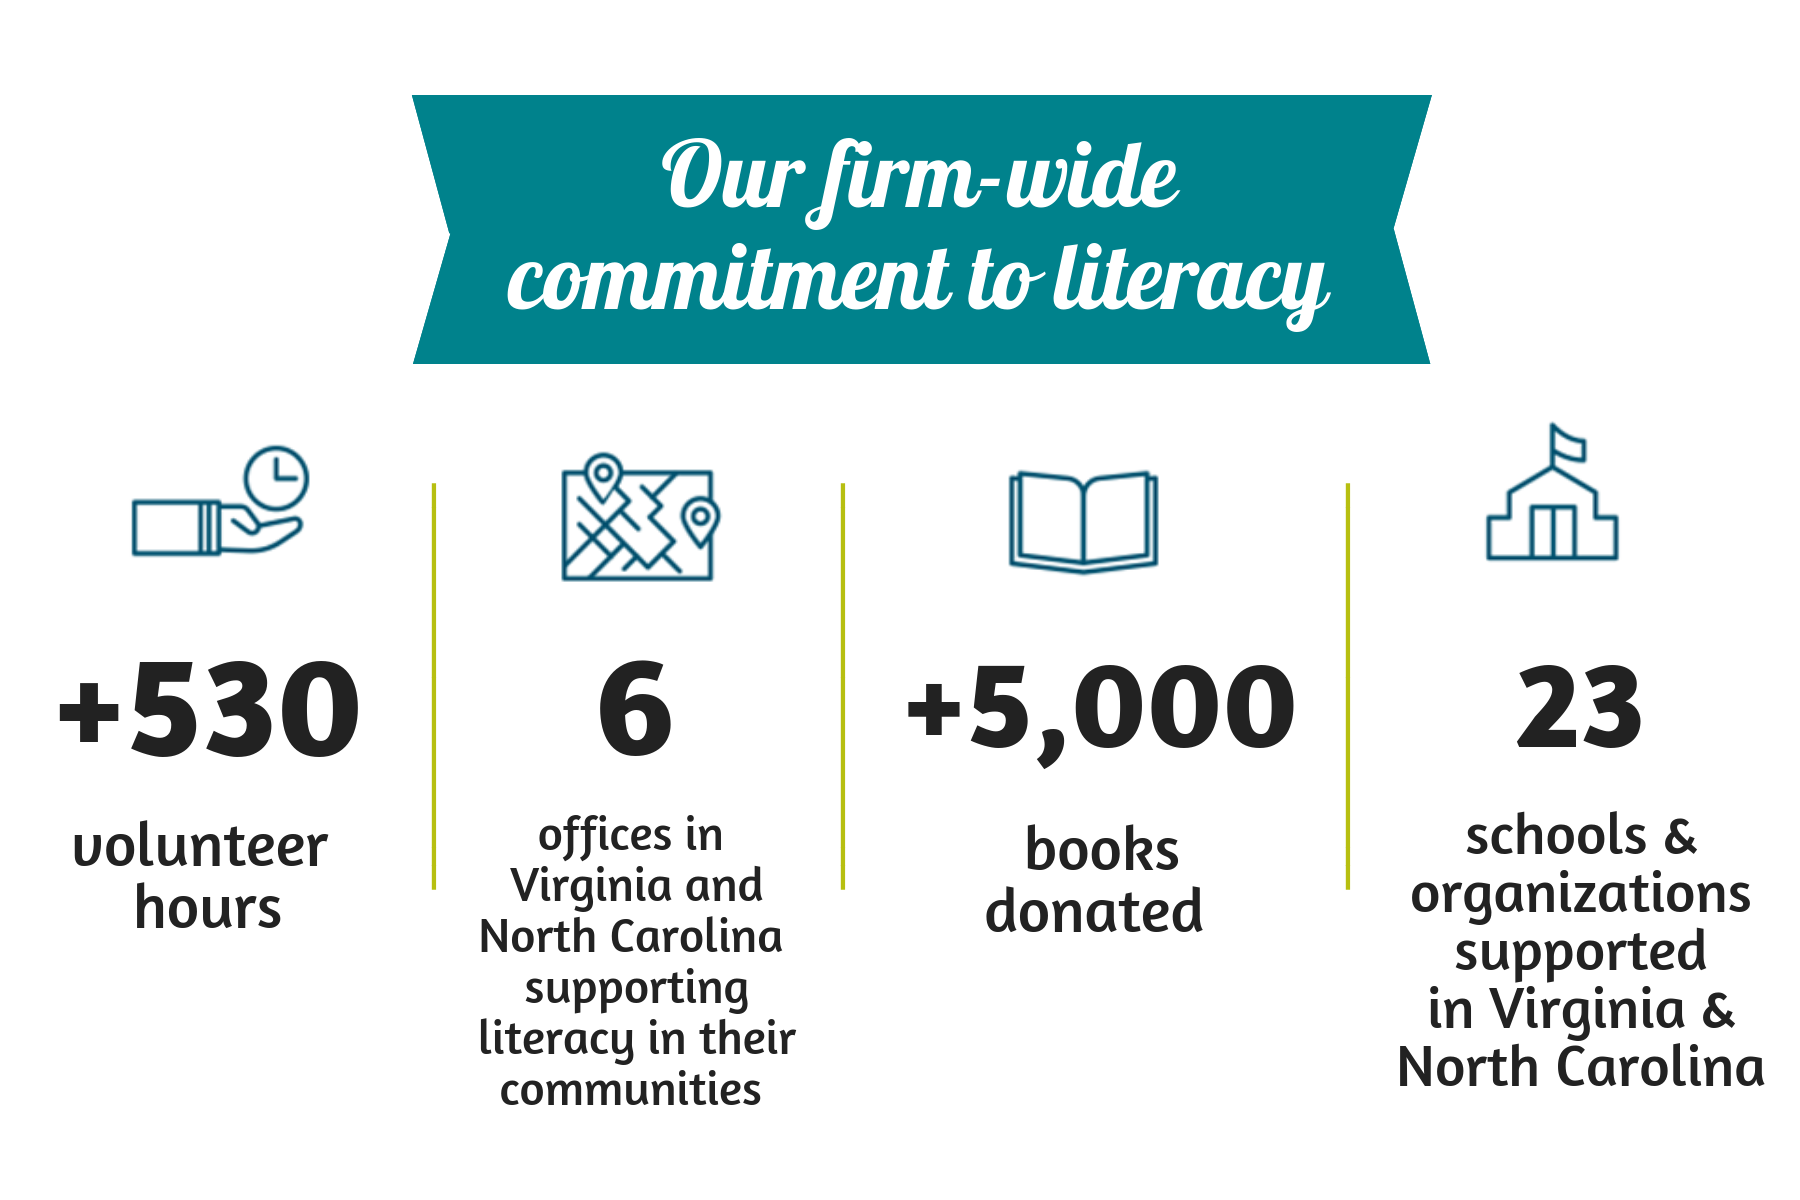 Our firm-wide commitment to literacy